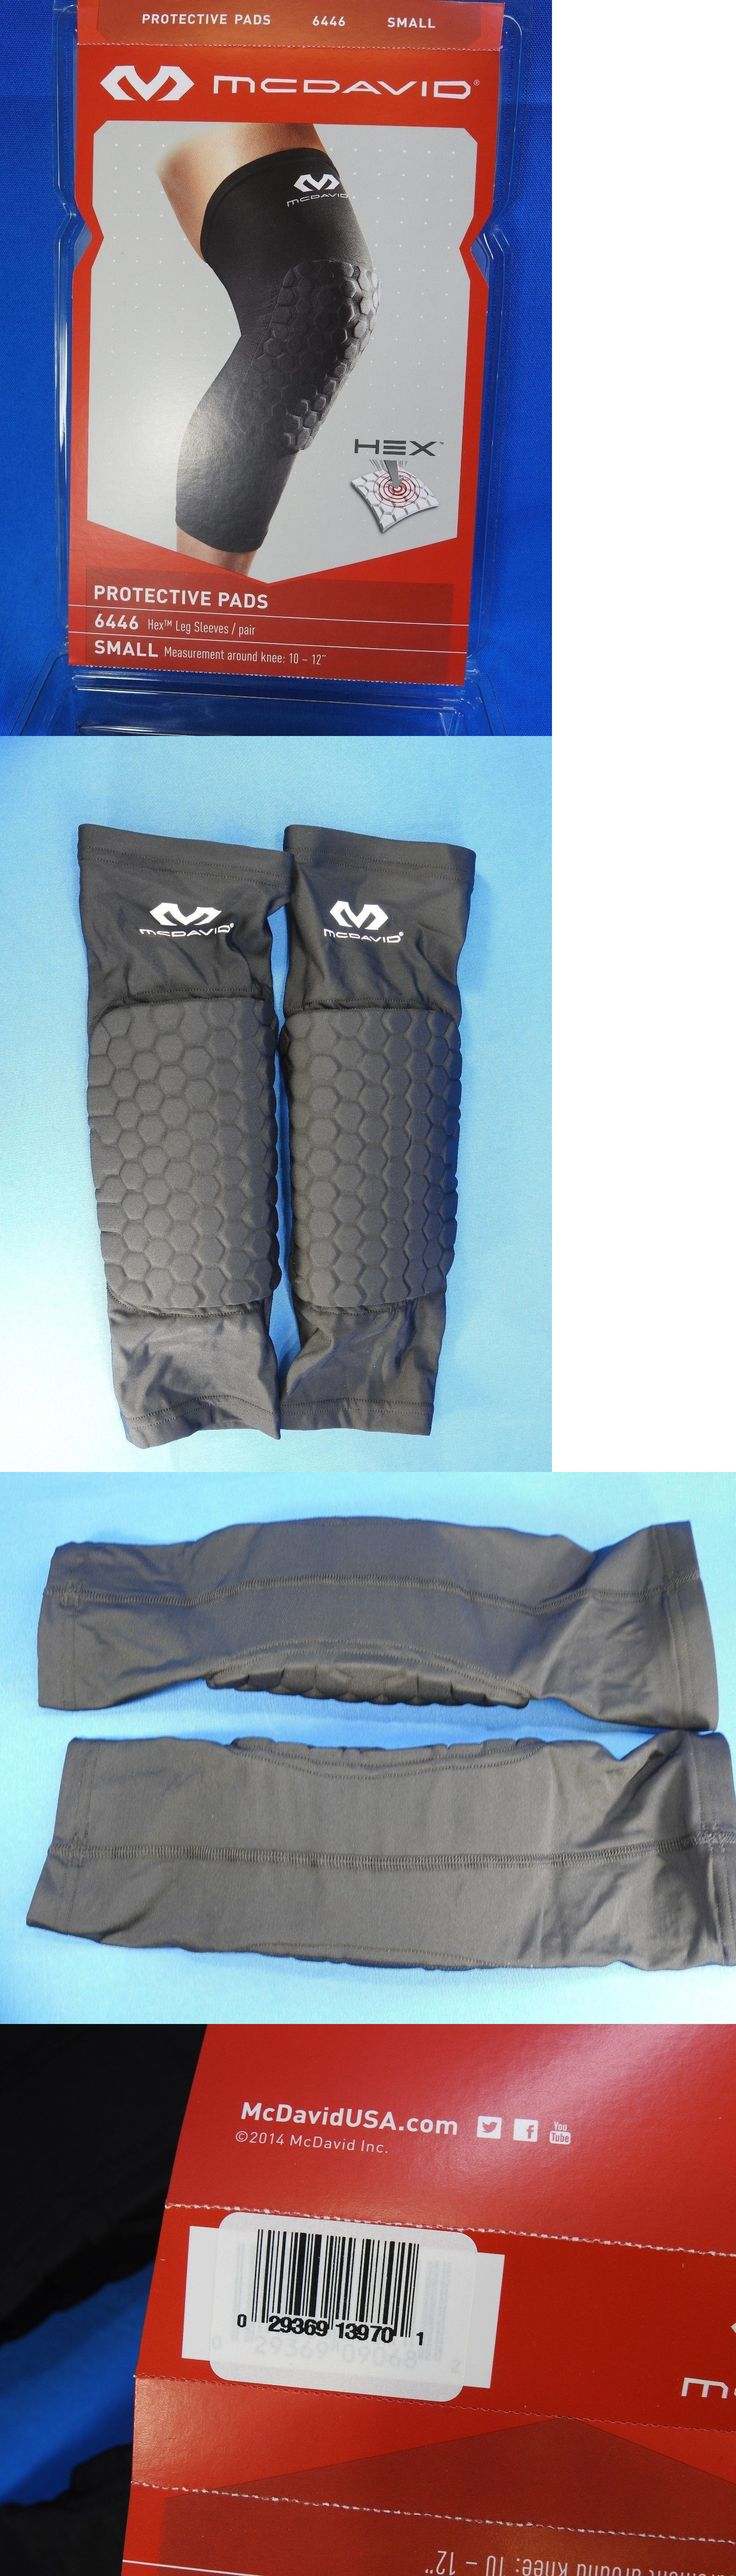 Protective Gear 158969: Mcdavid 6446 Hex Padded Compression Leg Sleeves Pair Black Small 10-12 BUY IT NOW ONLY: $35.0